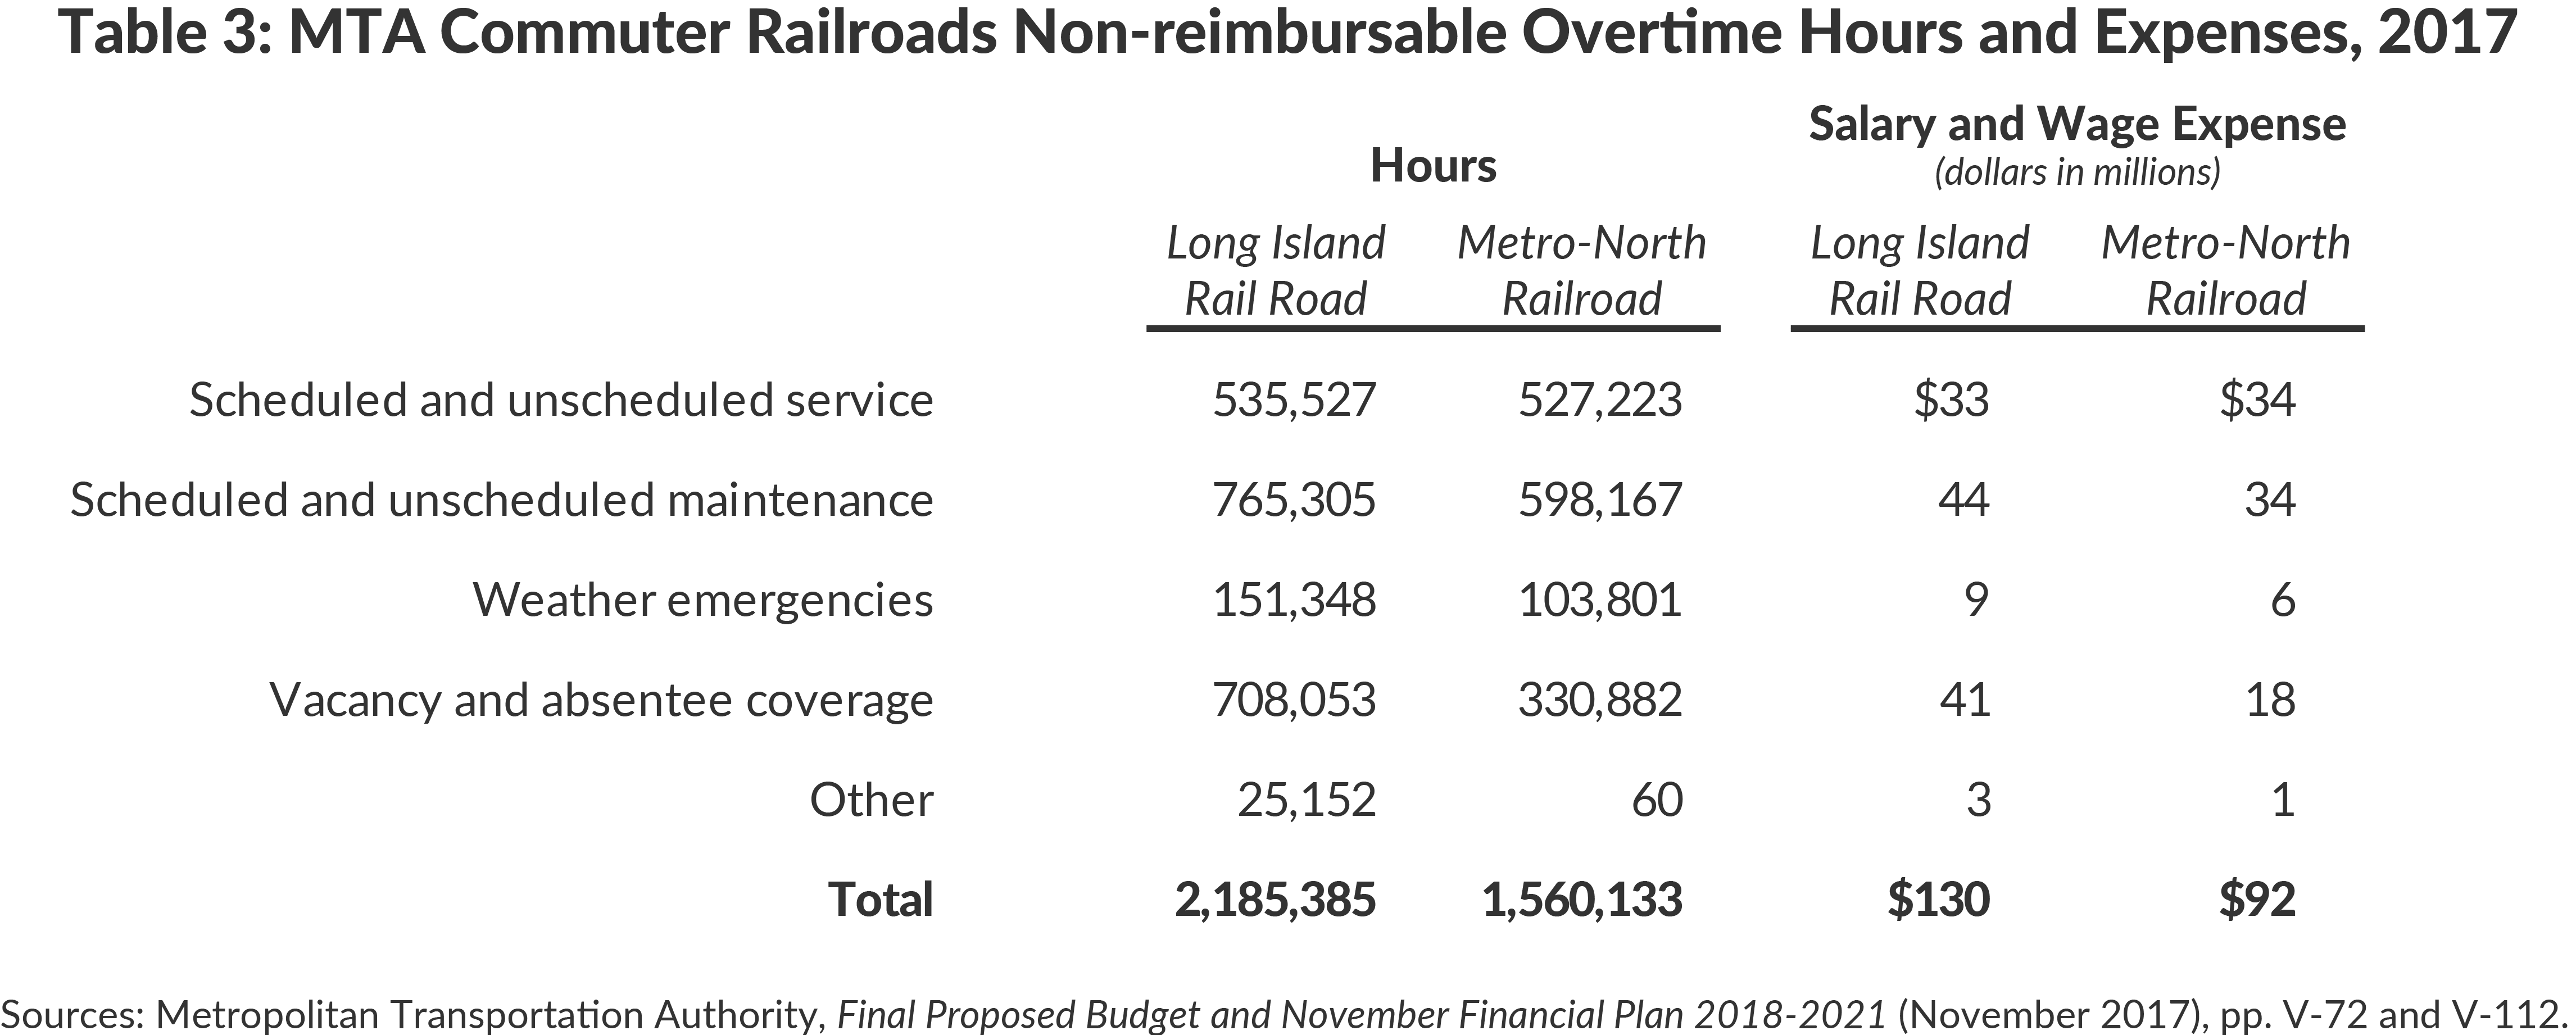 Table 3: MTA Commuter Railroads Non-reimbursable Overtime Hours and Expenses, 2017